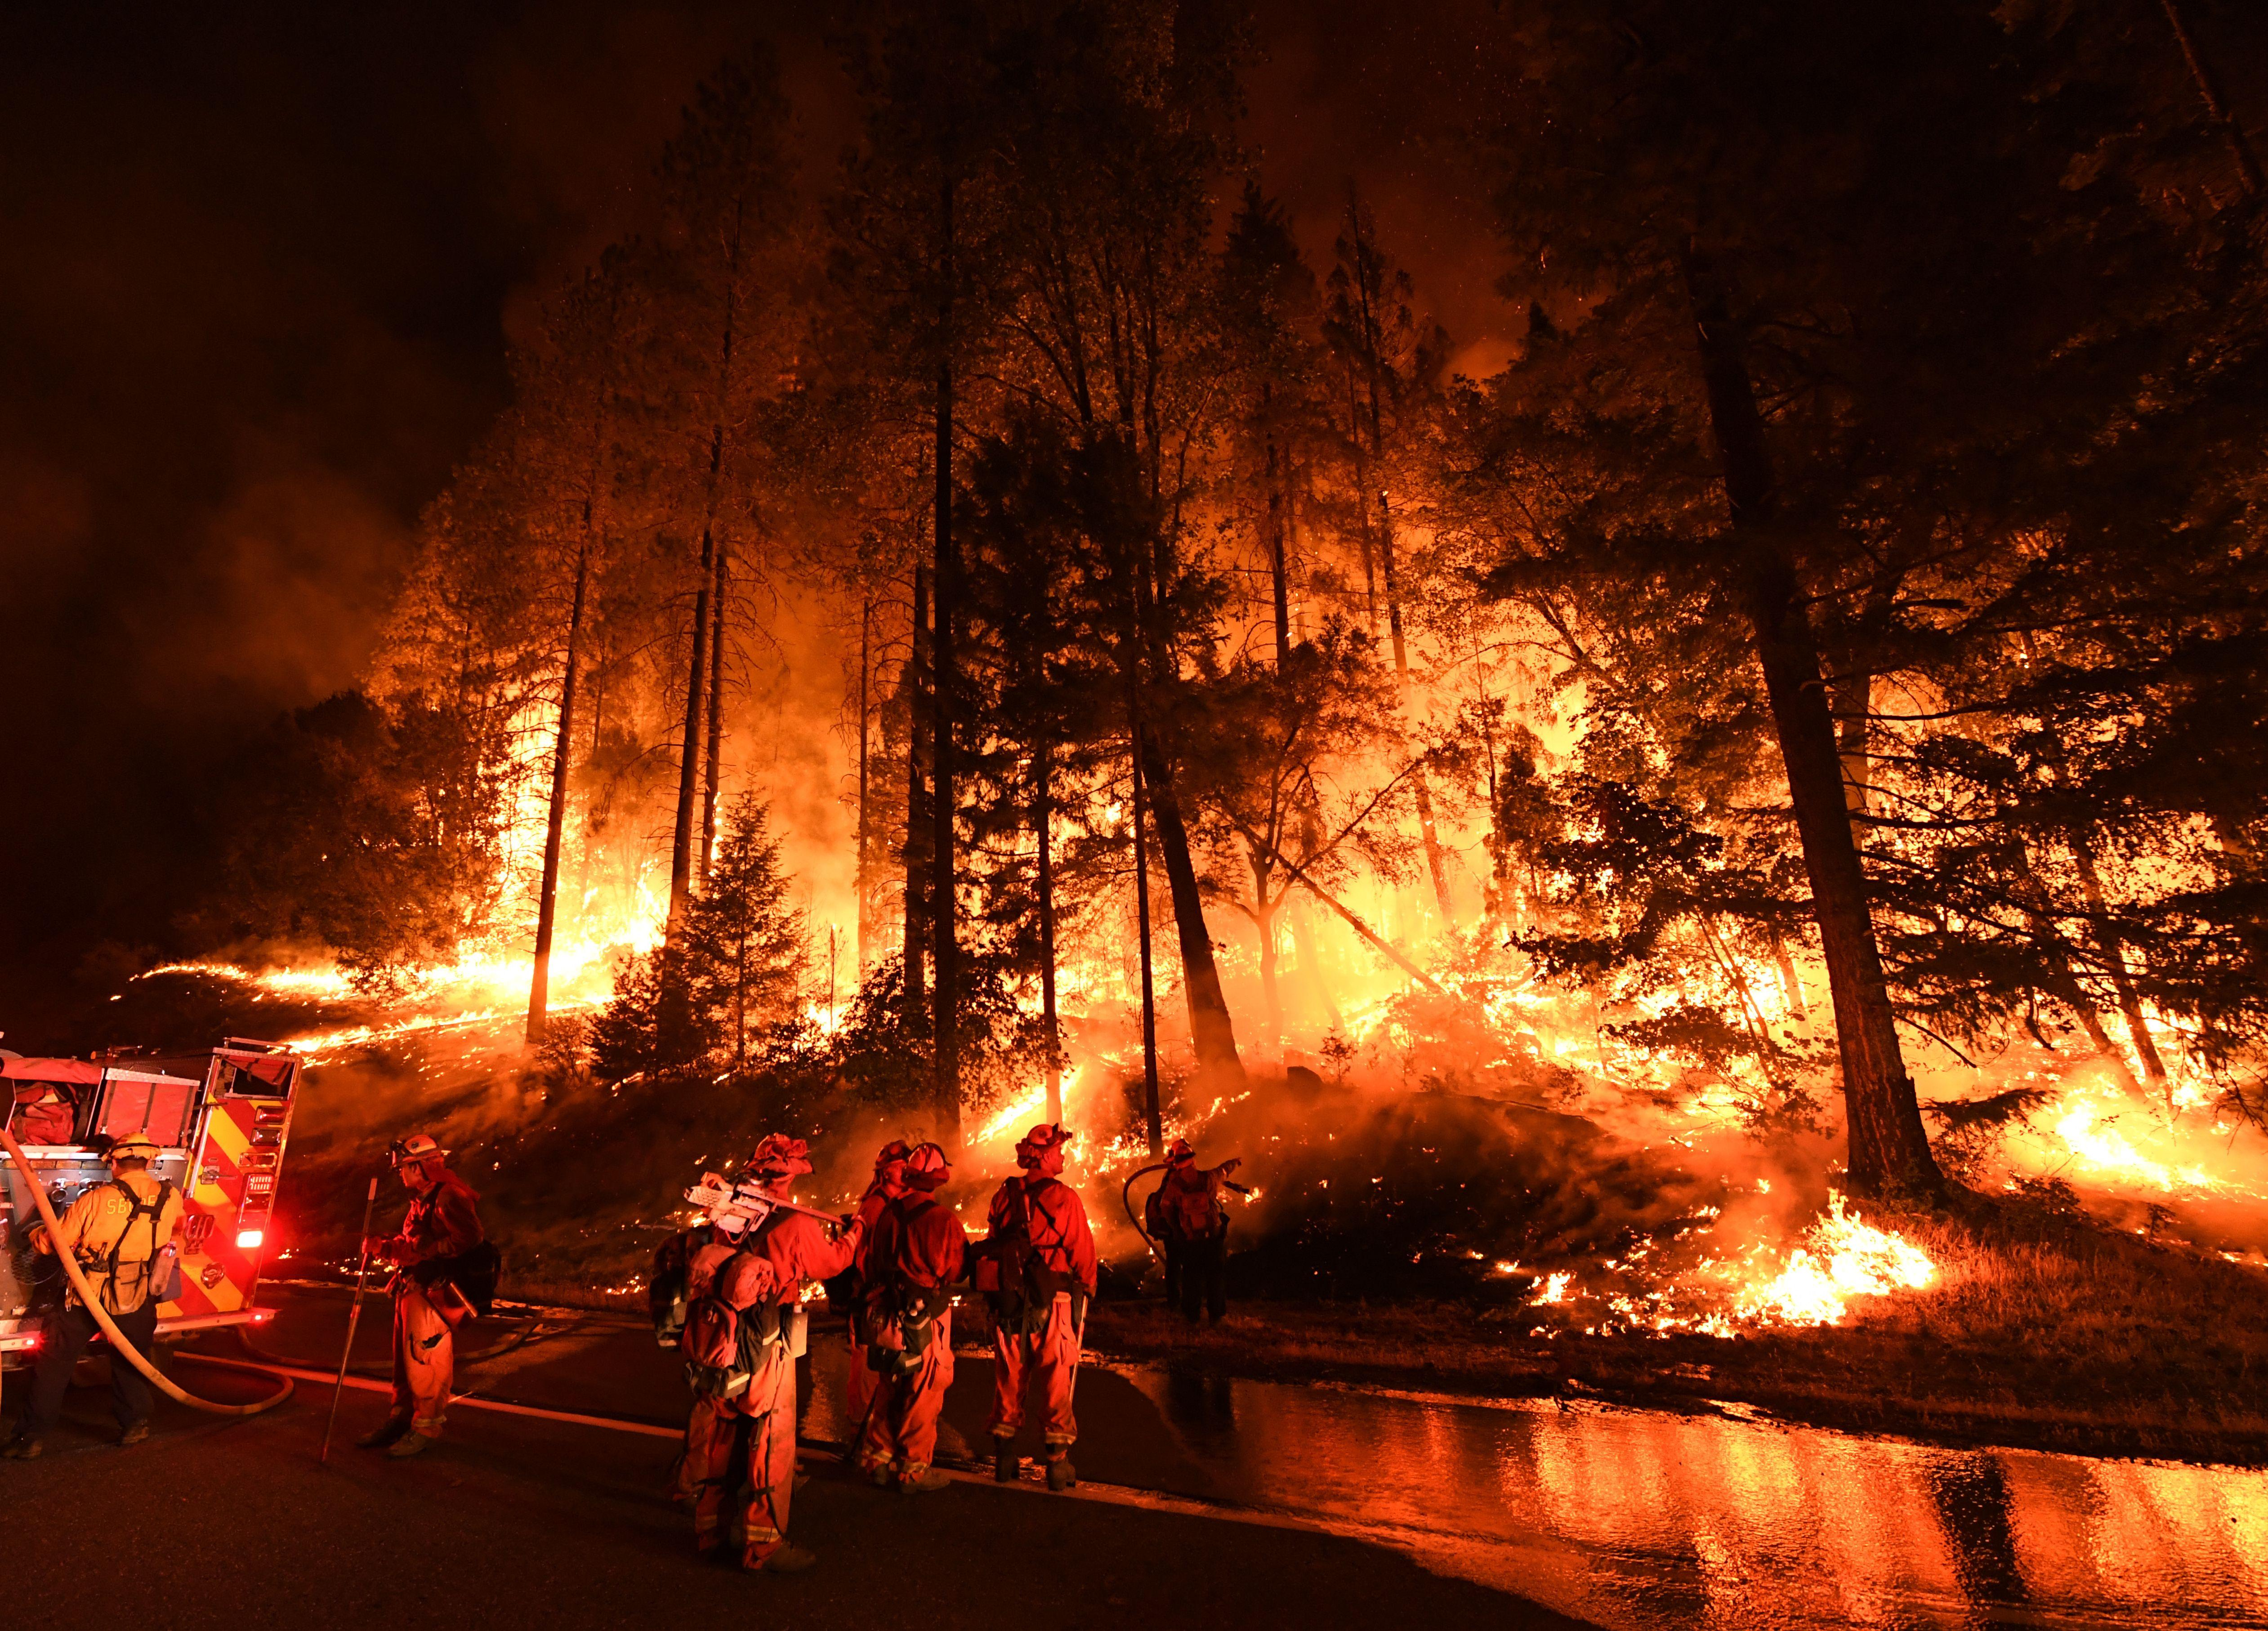 climate change and the california wildfires In a warming california, a future of more fire the recent cycle of drought and deluge in california led to major fire risk climate change makes that cycle worse.